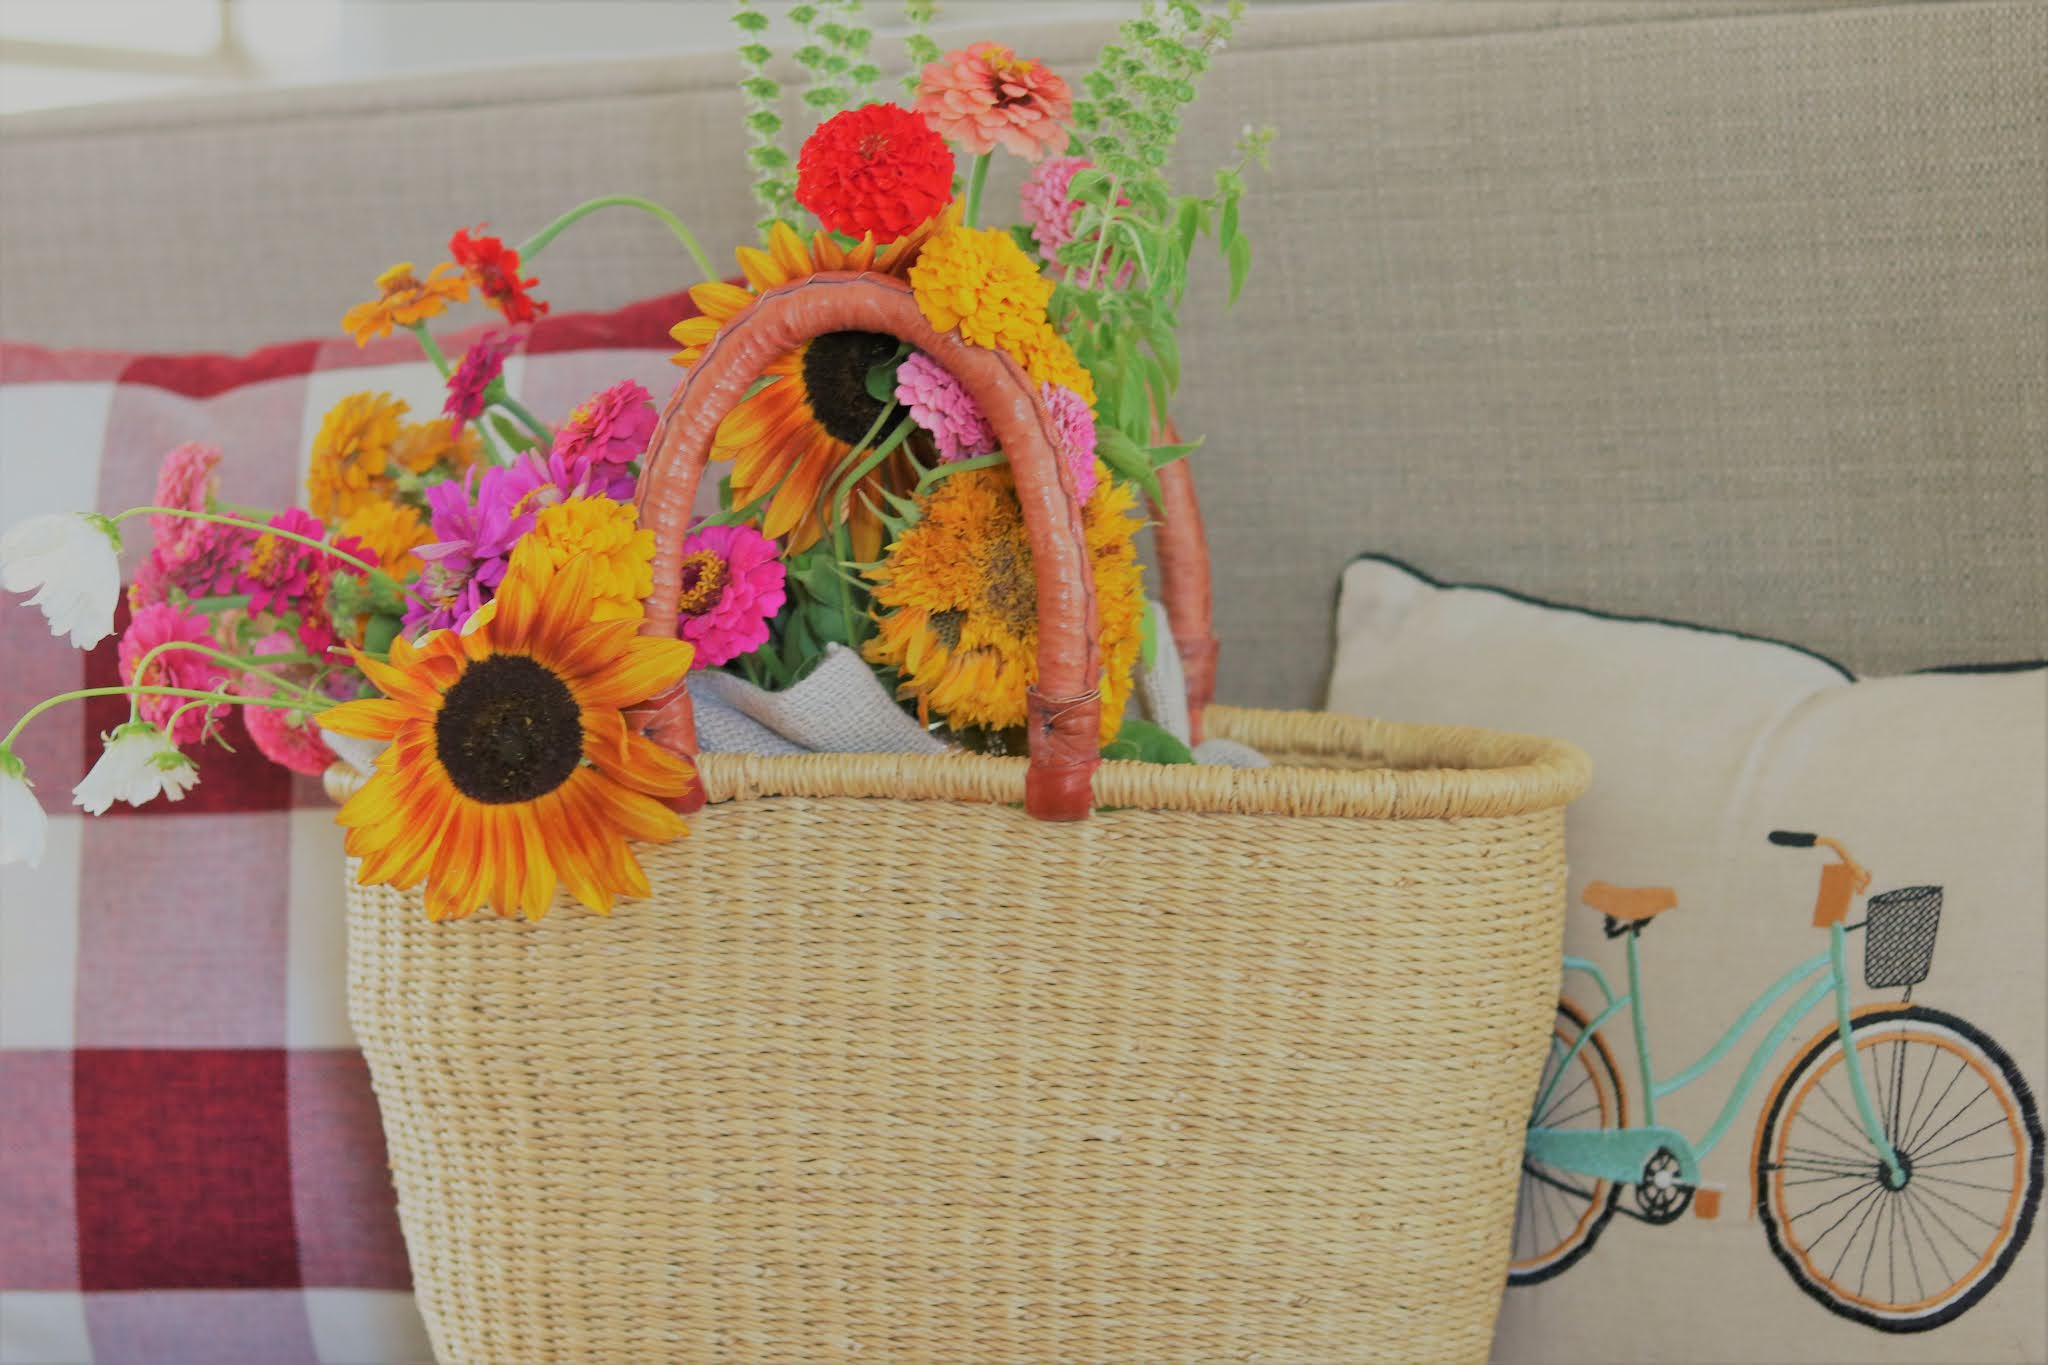 buffalo-check-red-french-basket-sunflowers-bouquet-decorating-athomewithjemma